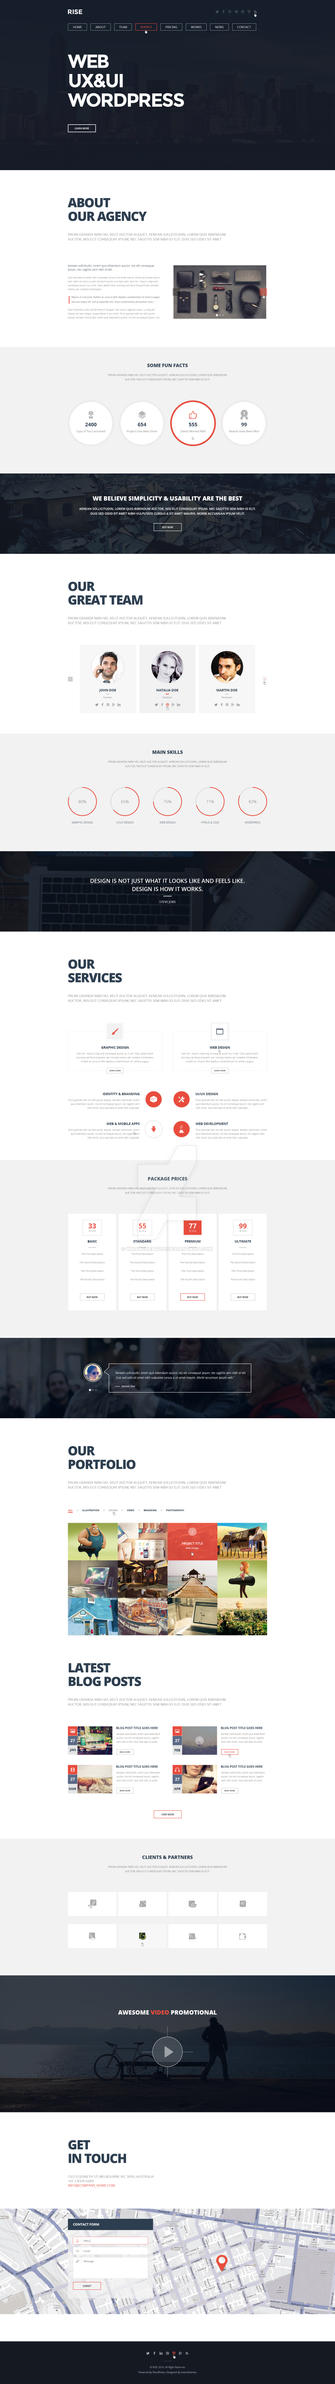 RISE - OnePage Agency Portfolio Template by wnabcreative